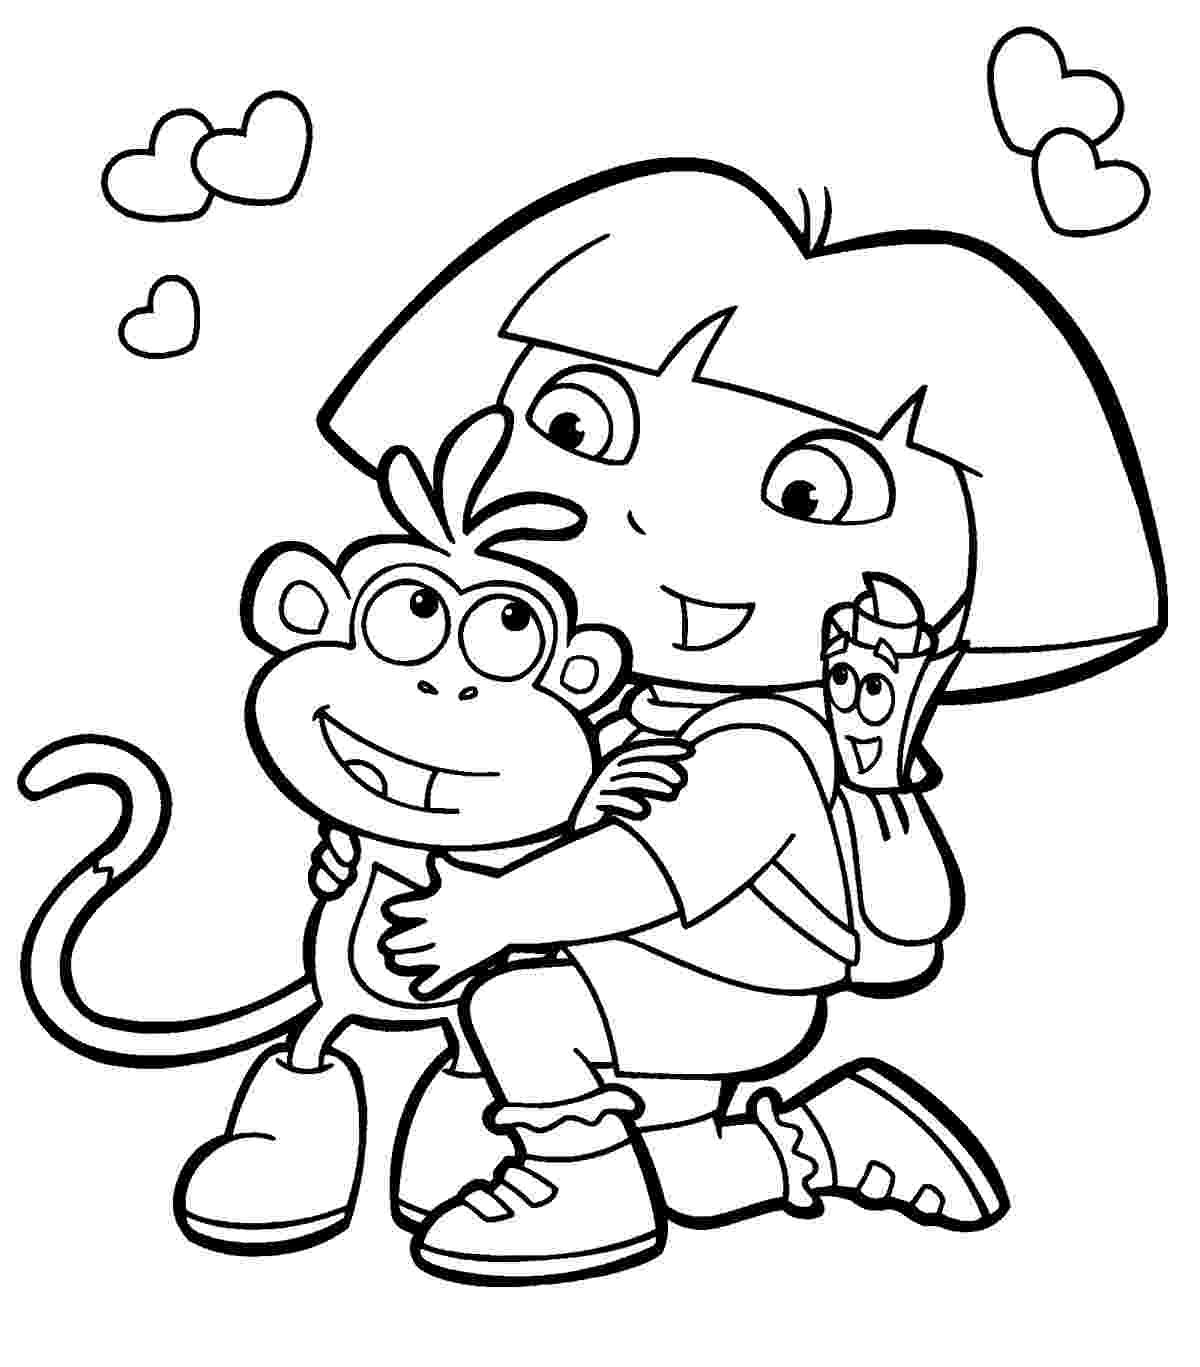 dora color dora coloring pages free printables momjunction color dora